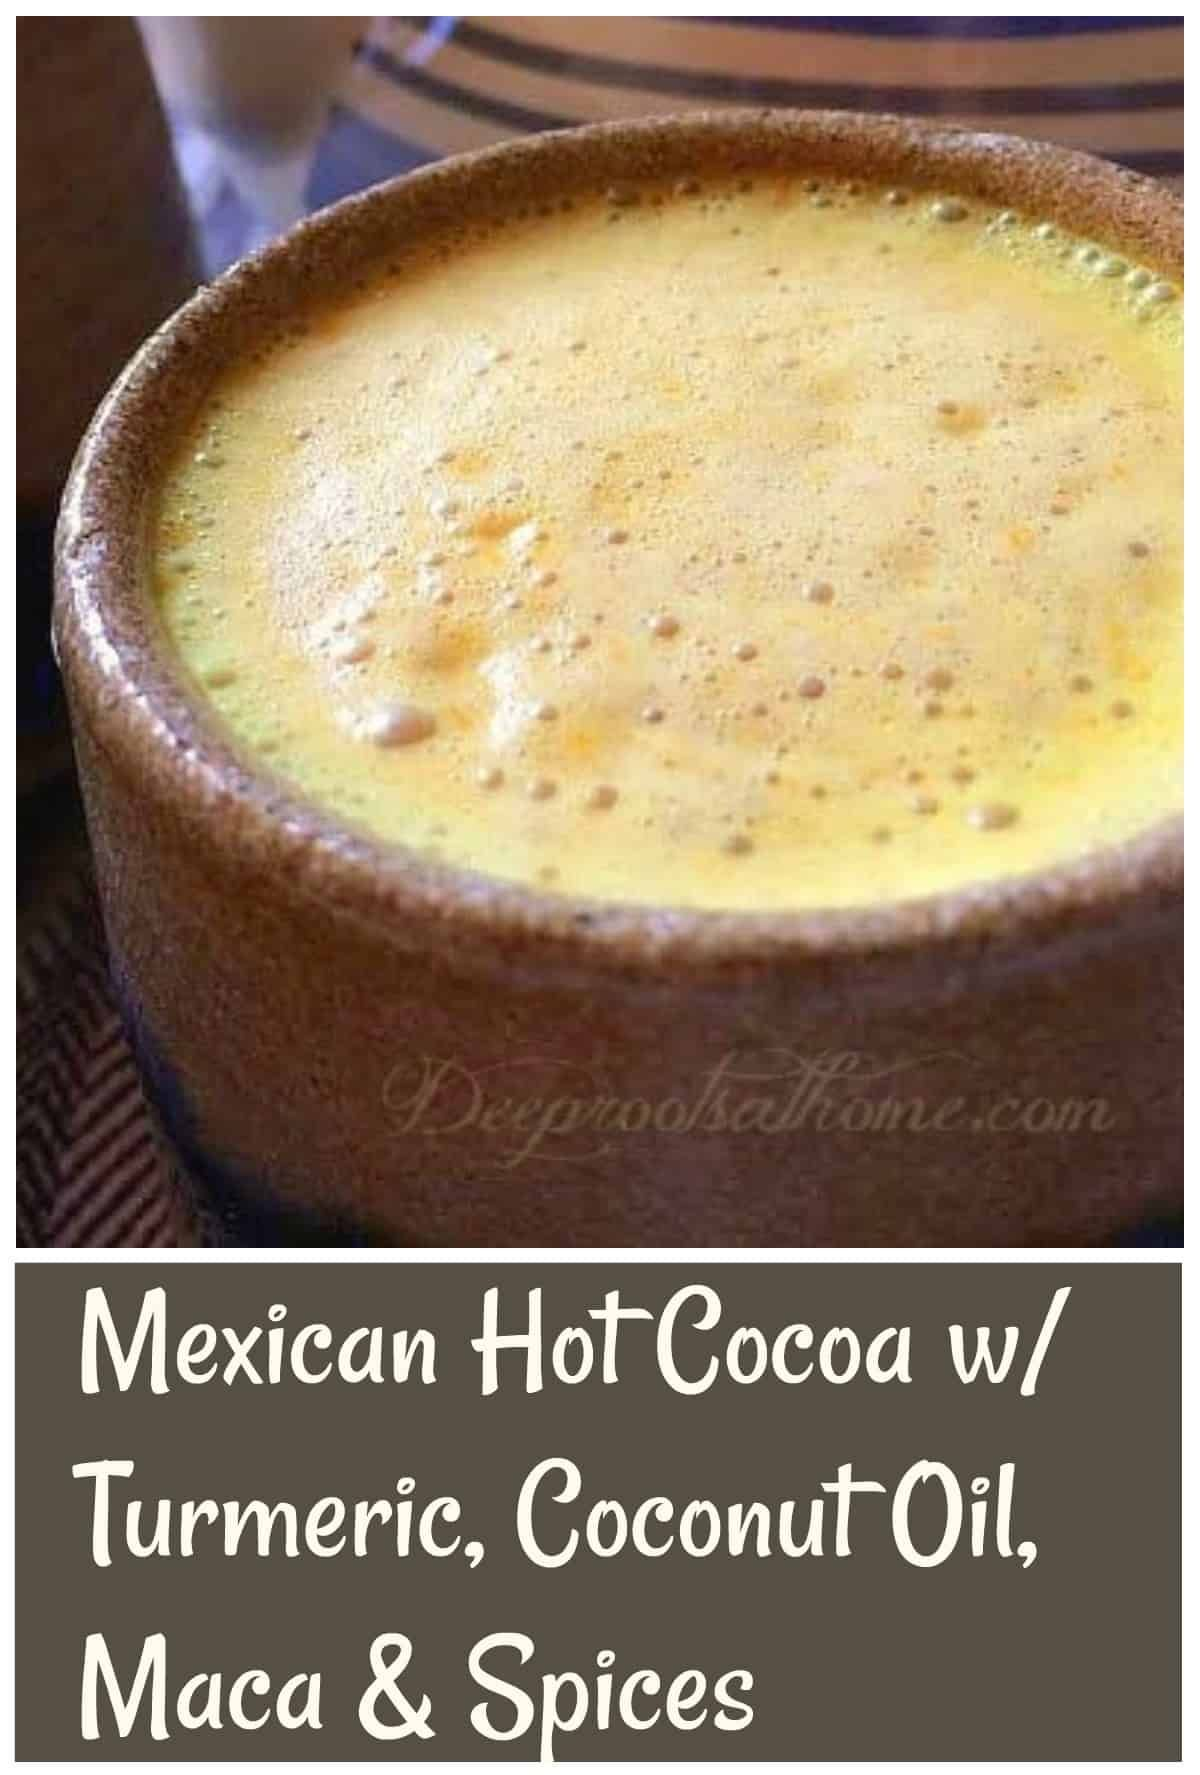 Mexican Hot Cocoa With Turmeric, Coconut Oil, Maca & Spices. Slow down aging and increase strength,...